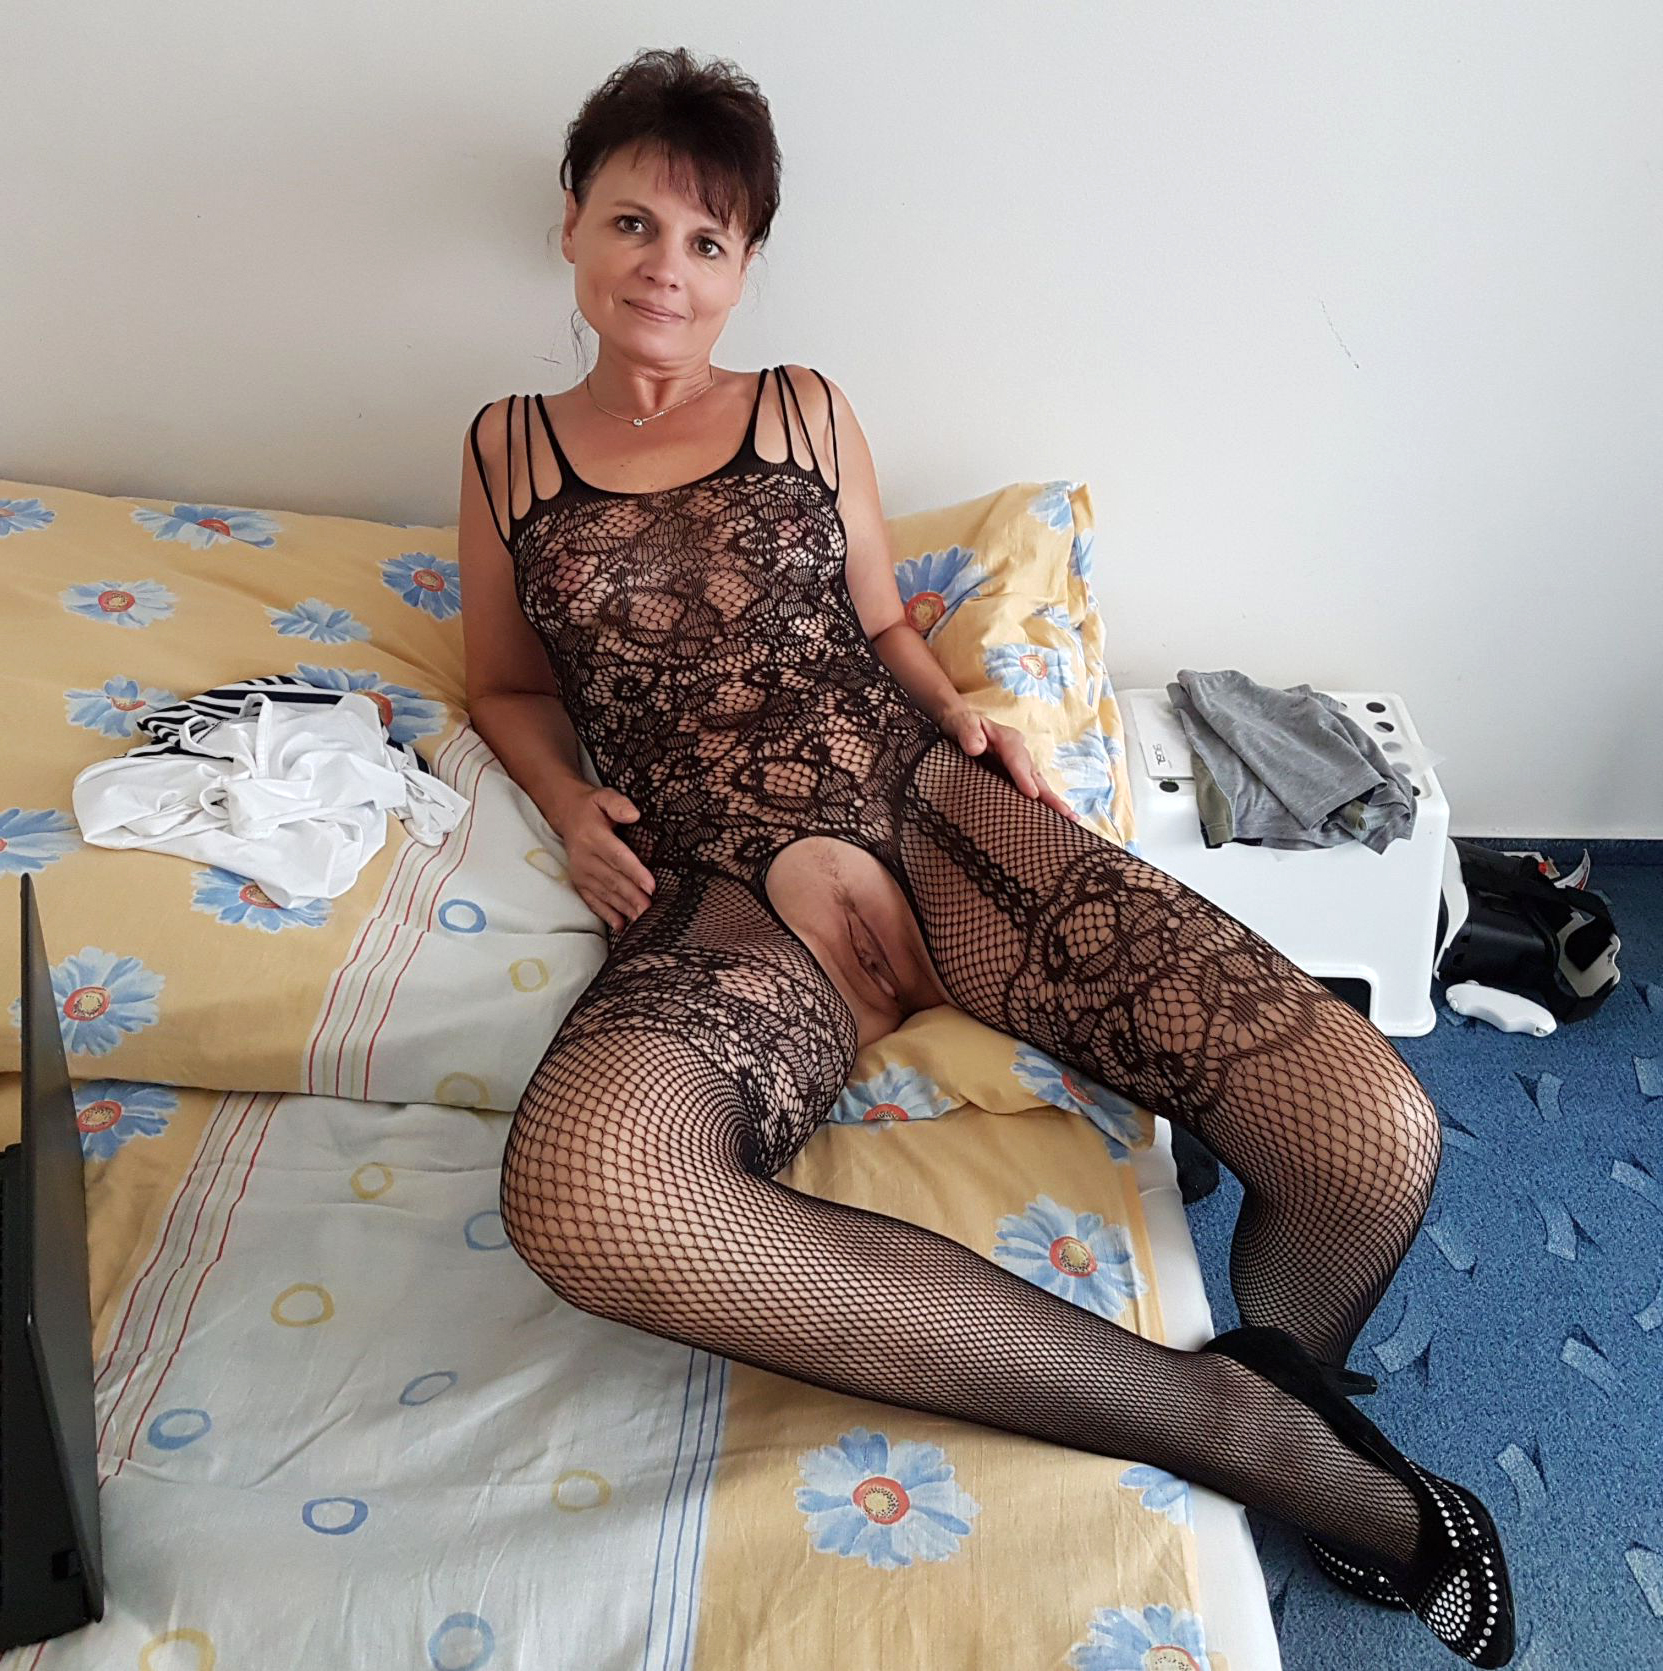 event outcall cocksucker slut milf that can not